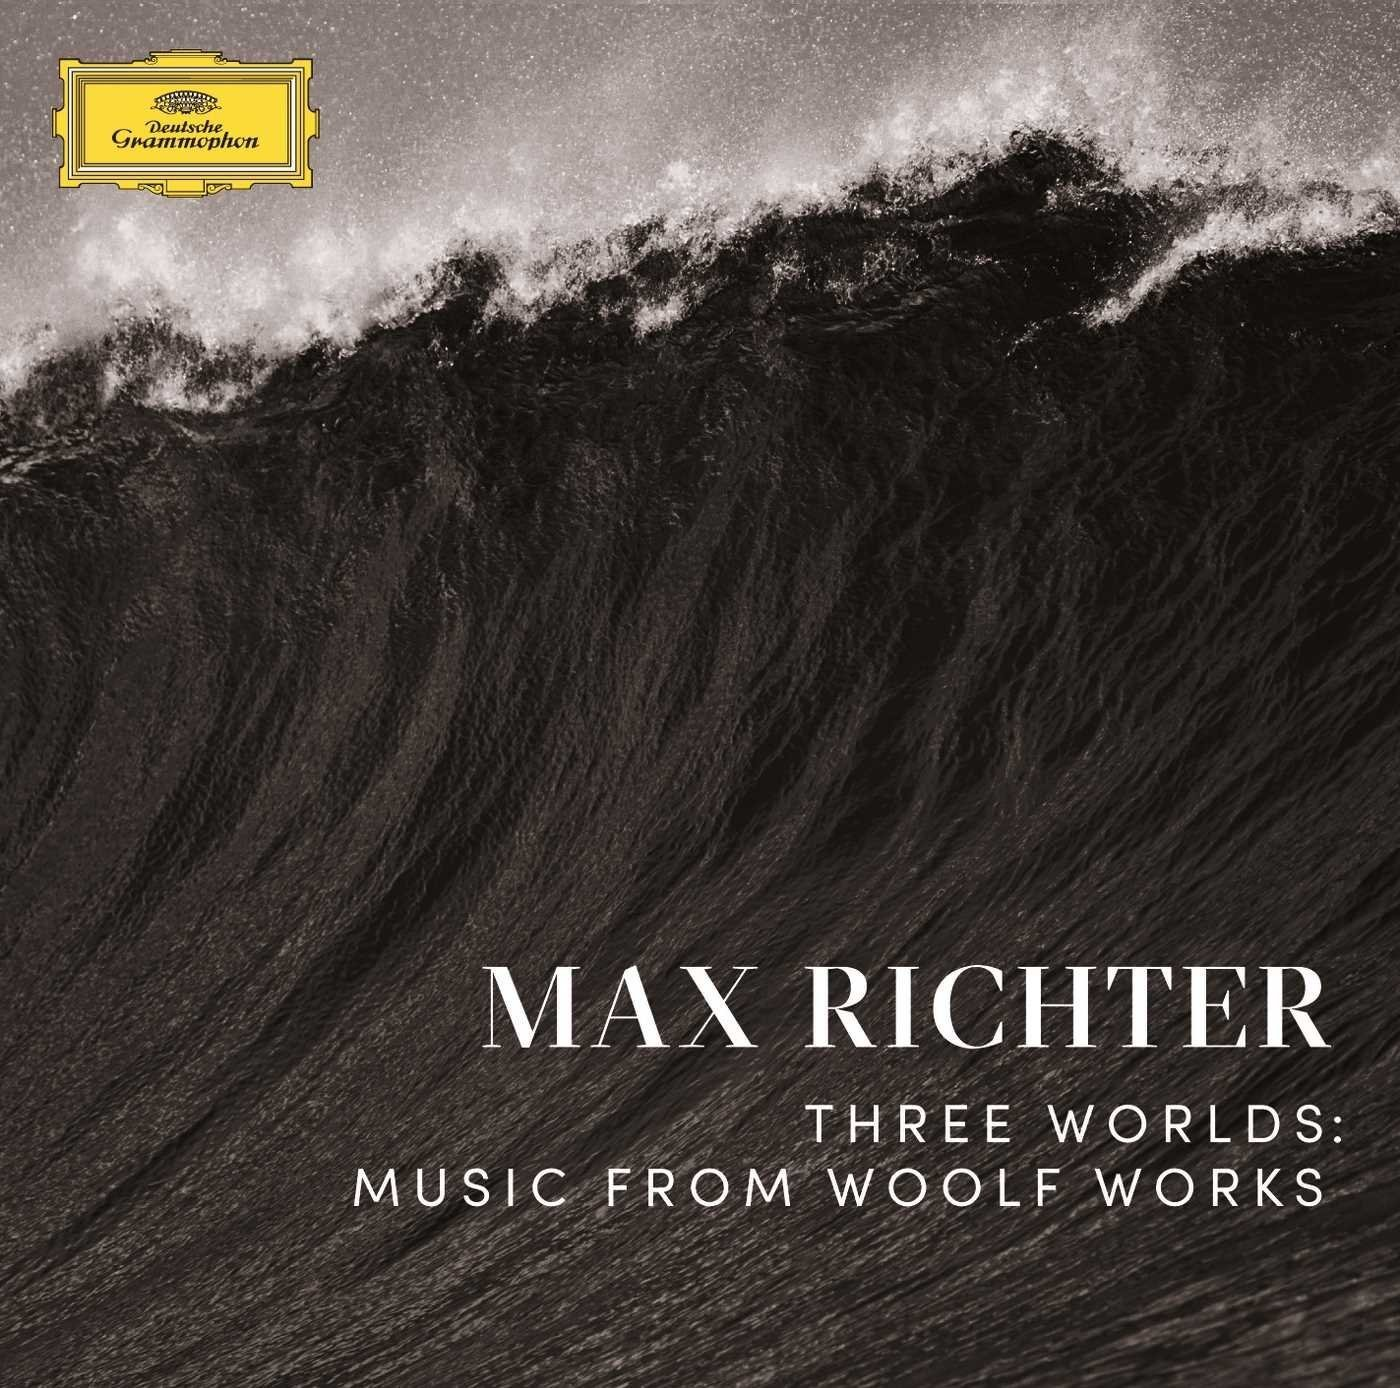 crossover 02 17 Max Richter 3 worlds